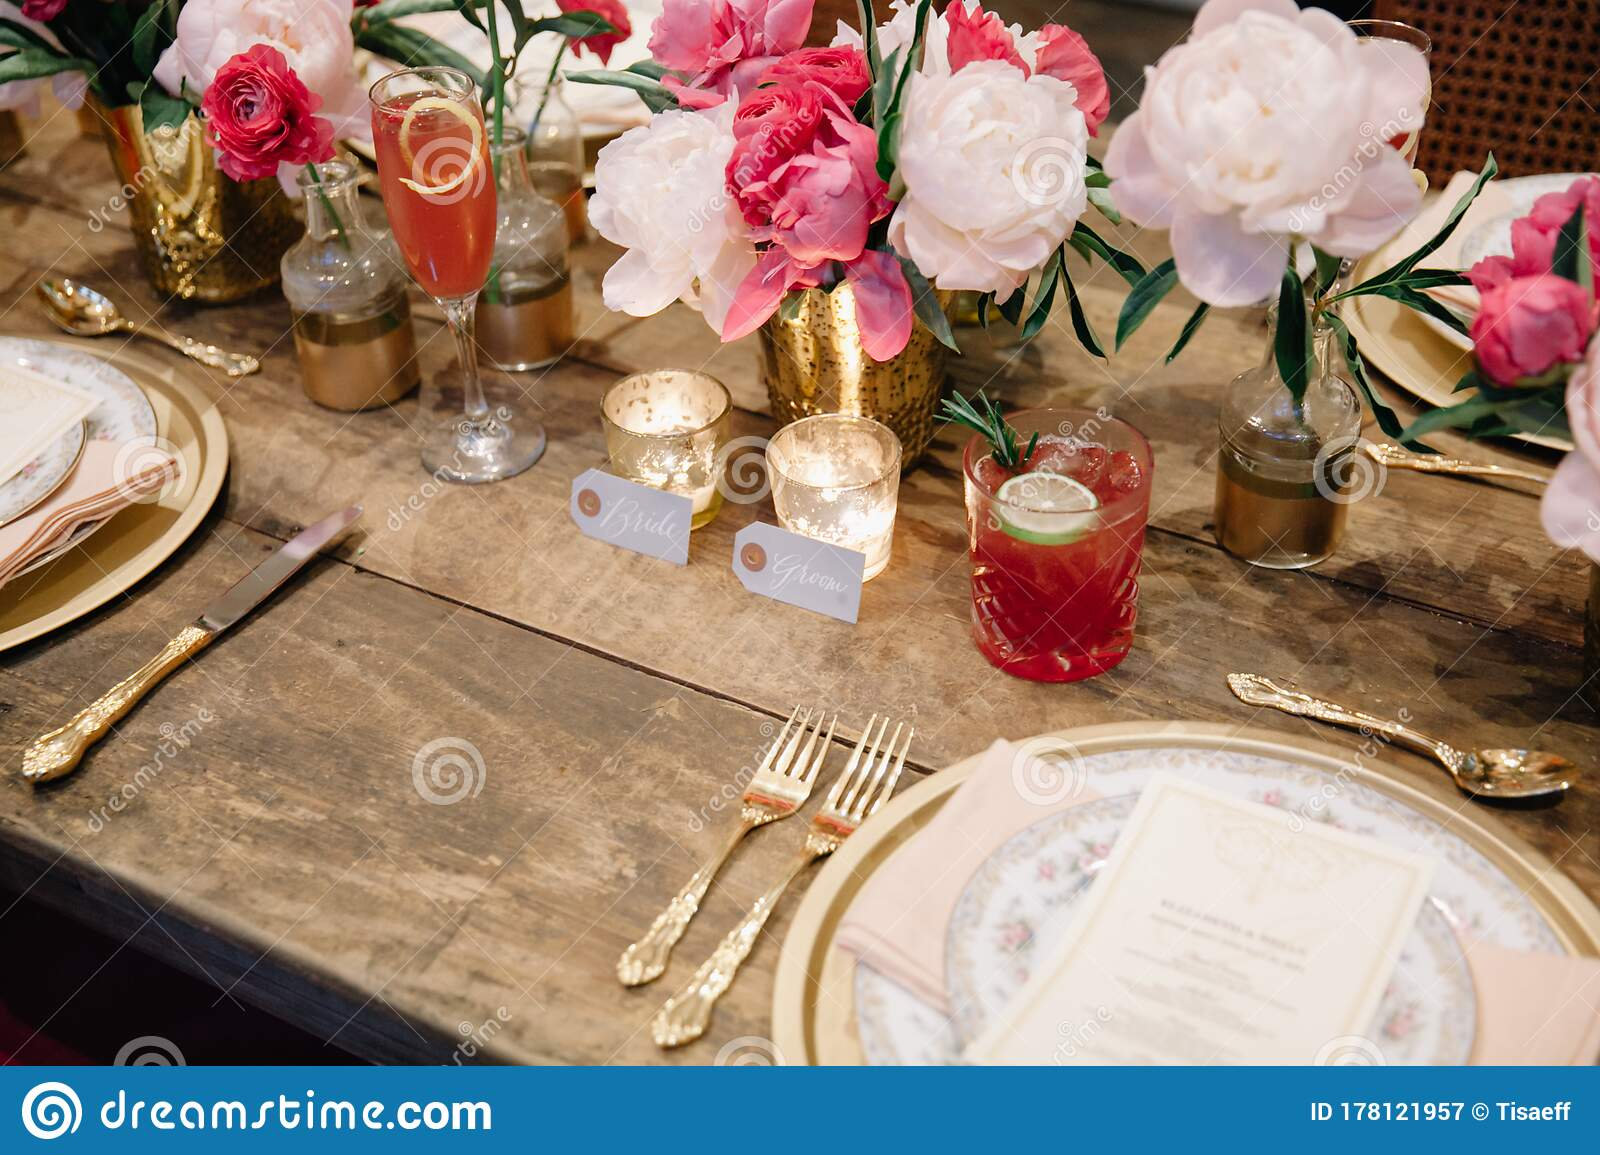 A Wedding Table Set Up For Celebration Stock Image Image Of Glass Pink 178121957